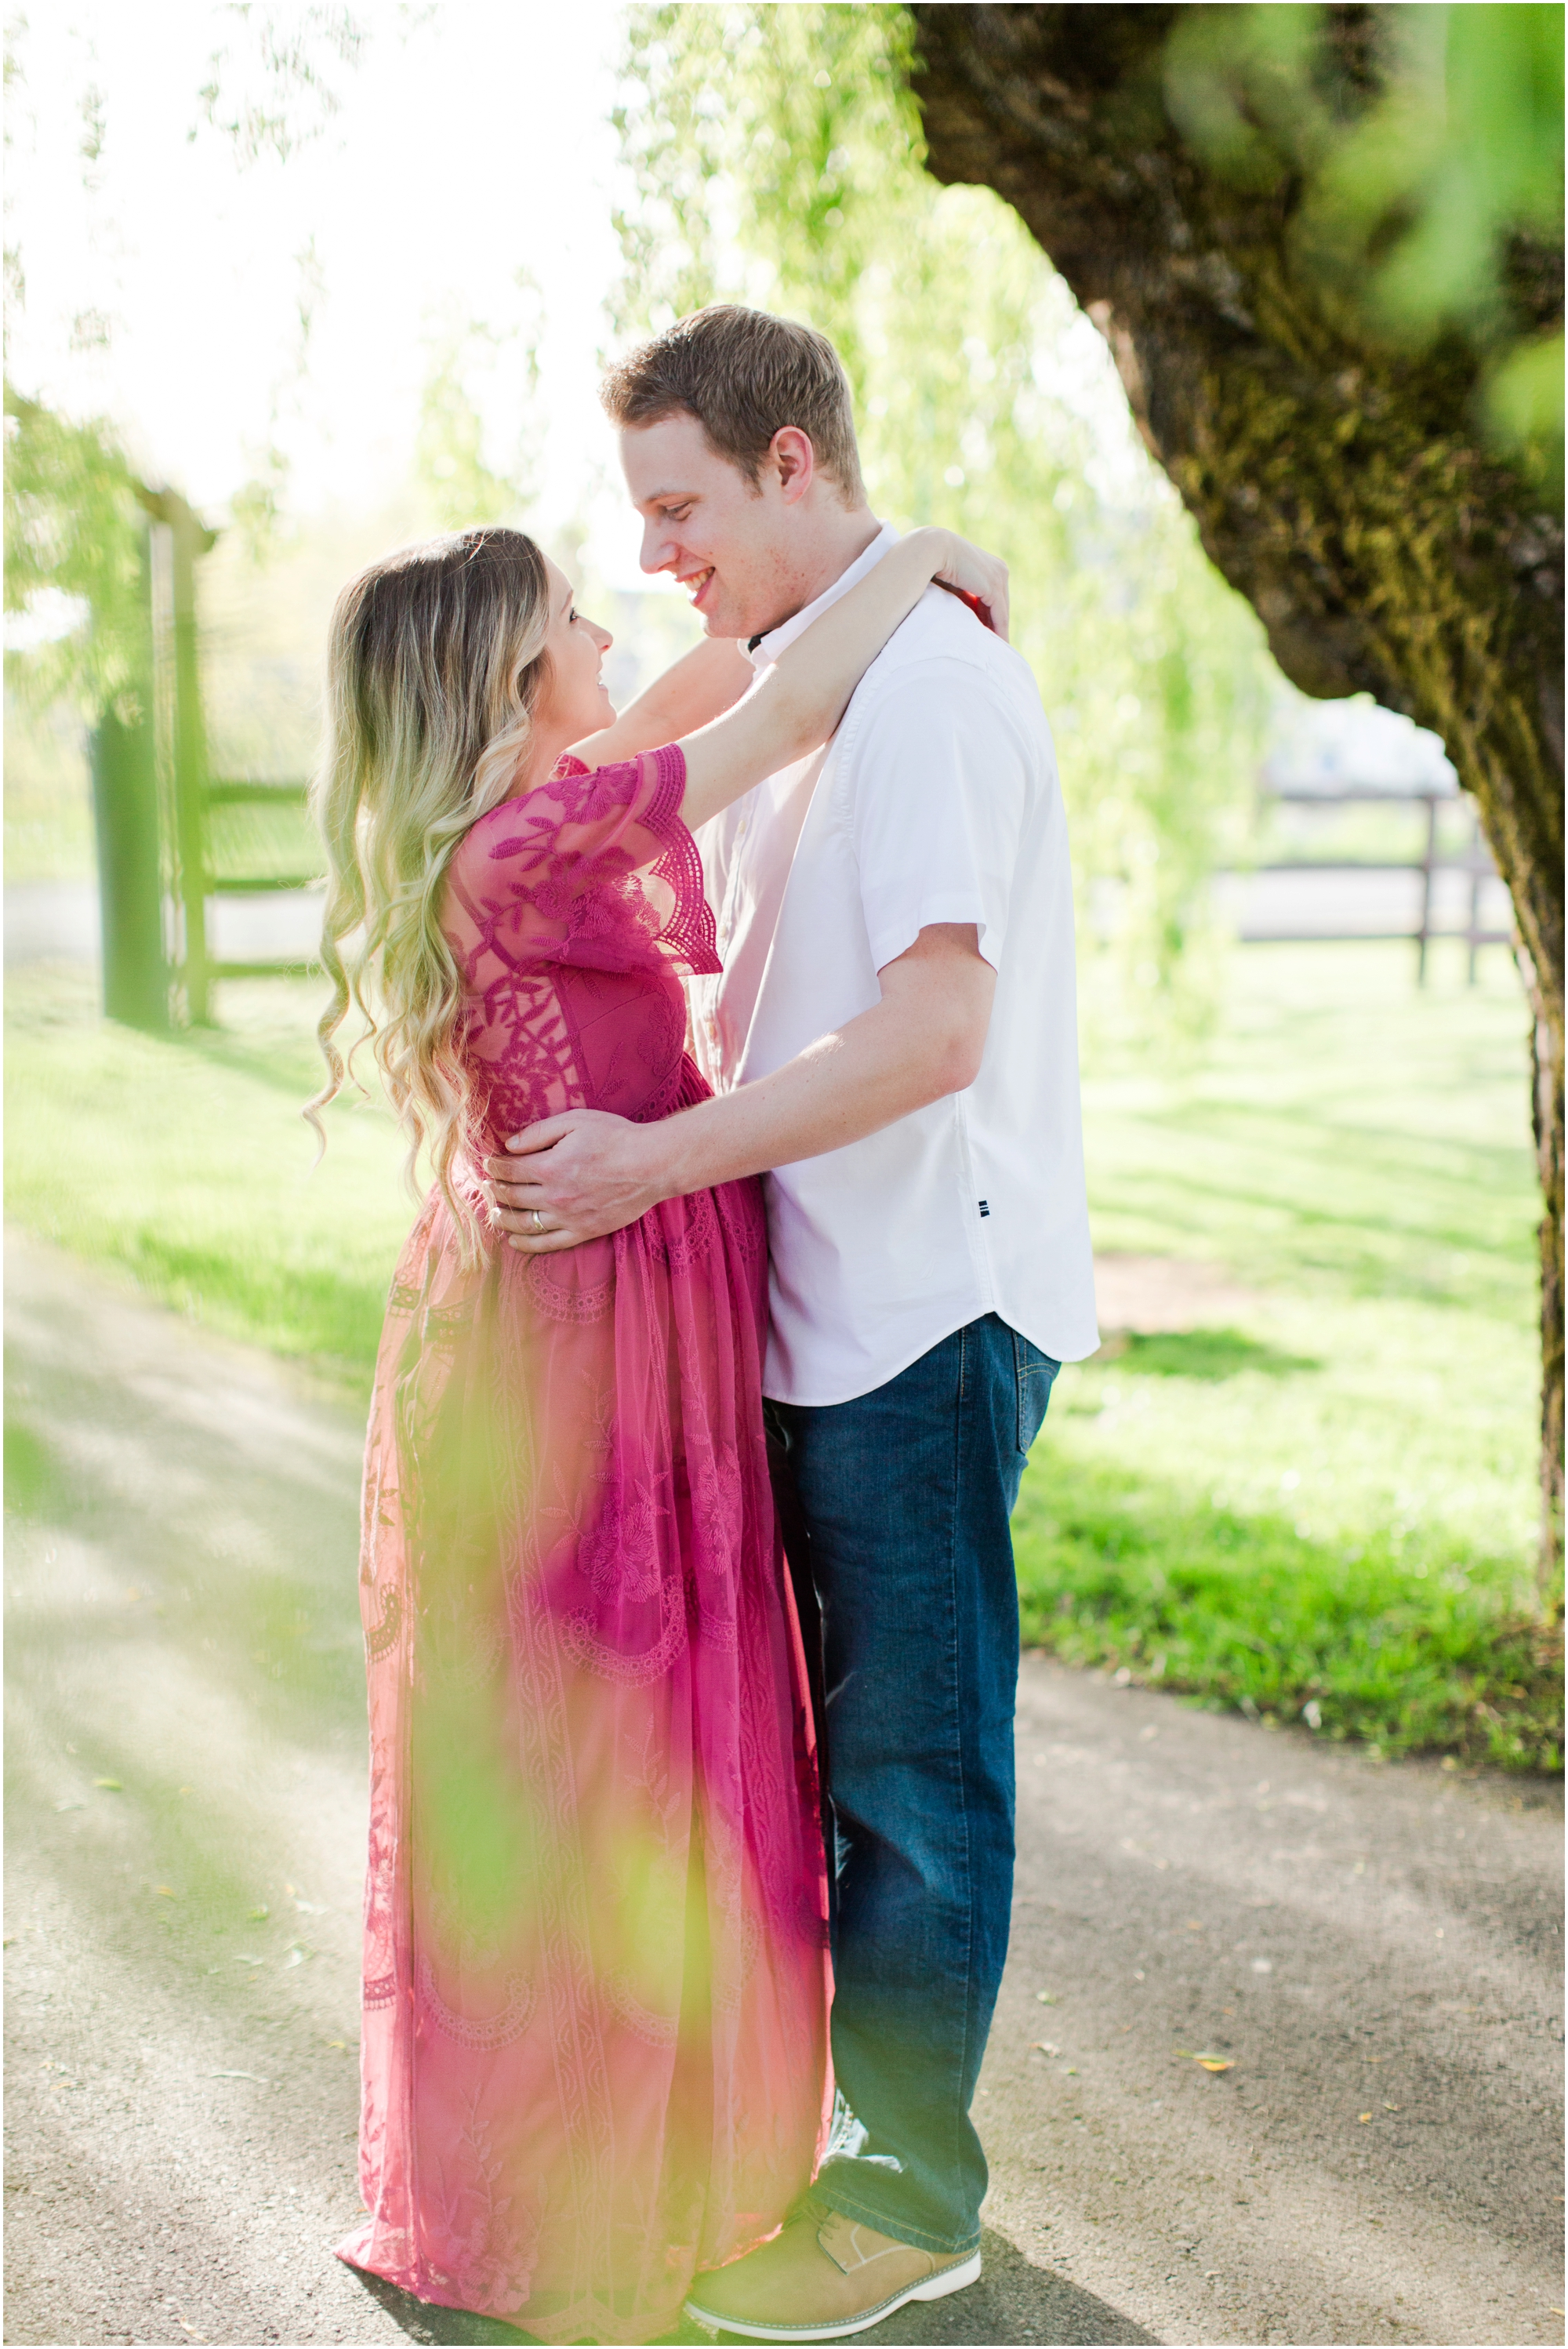 Wild Hearts Farm maternity shoot in Tacoma. Photos by Briana Calderon Photography based in the greater Seattle Tacoma Area._1191.jpg